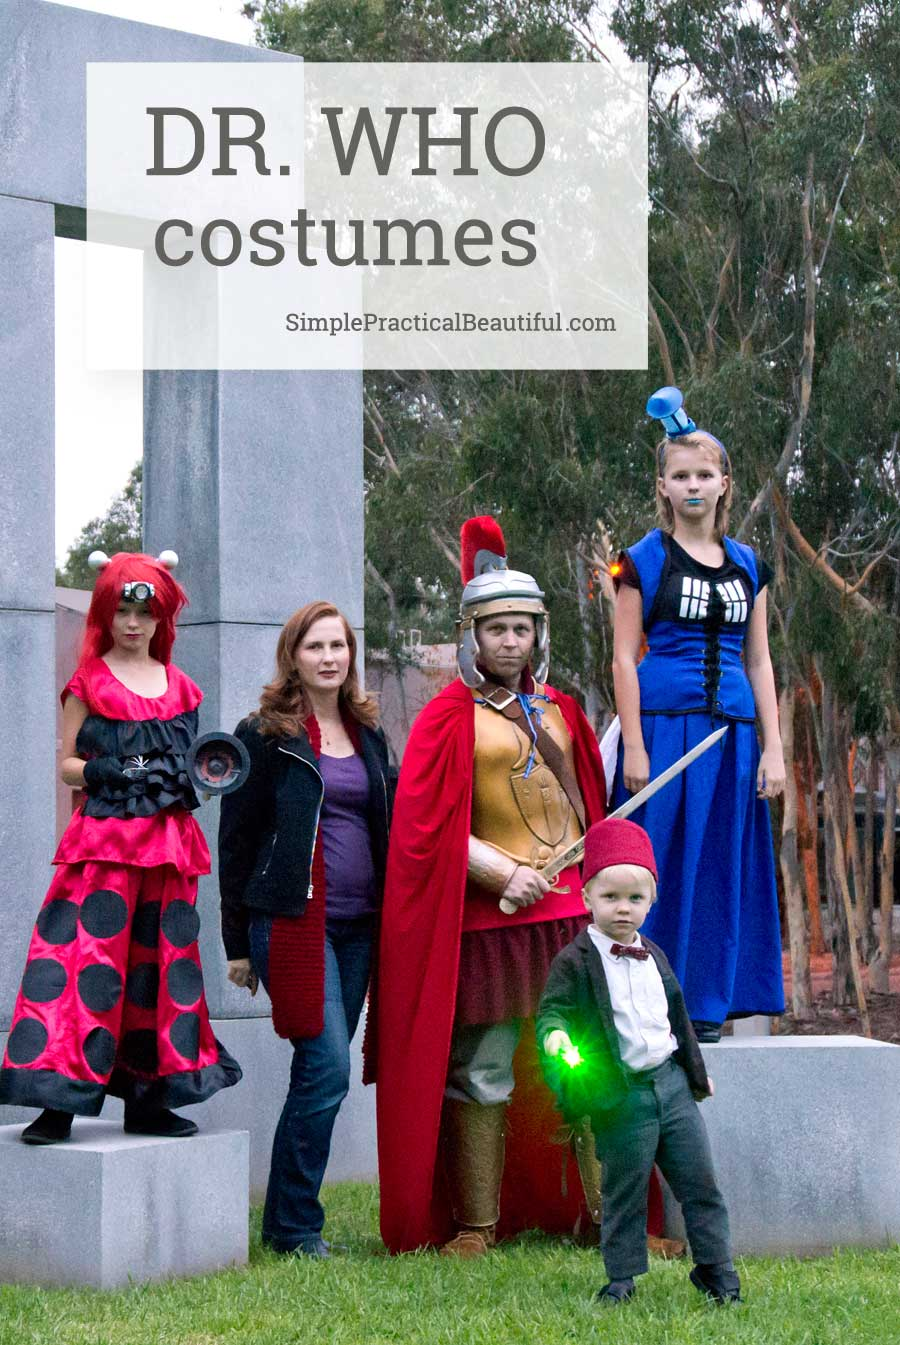 doctor who family costume - simple practical beautiful